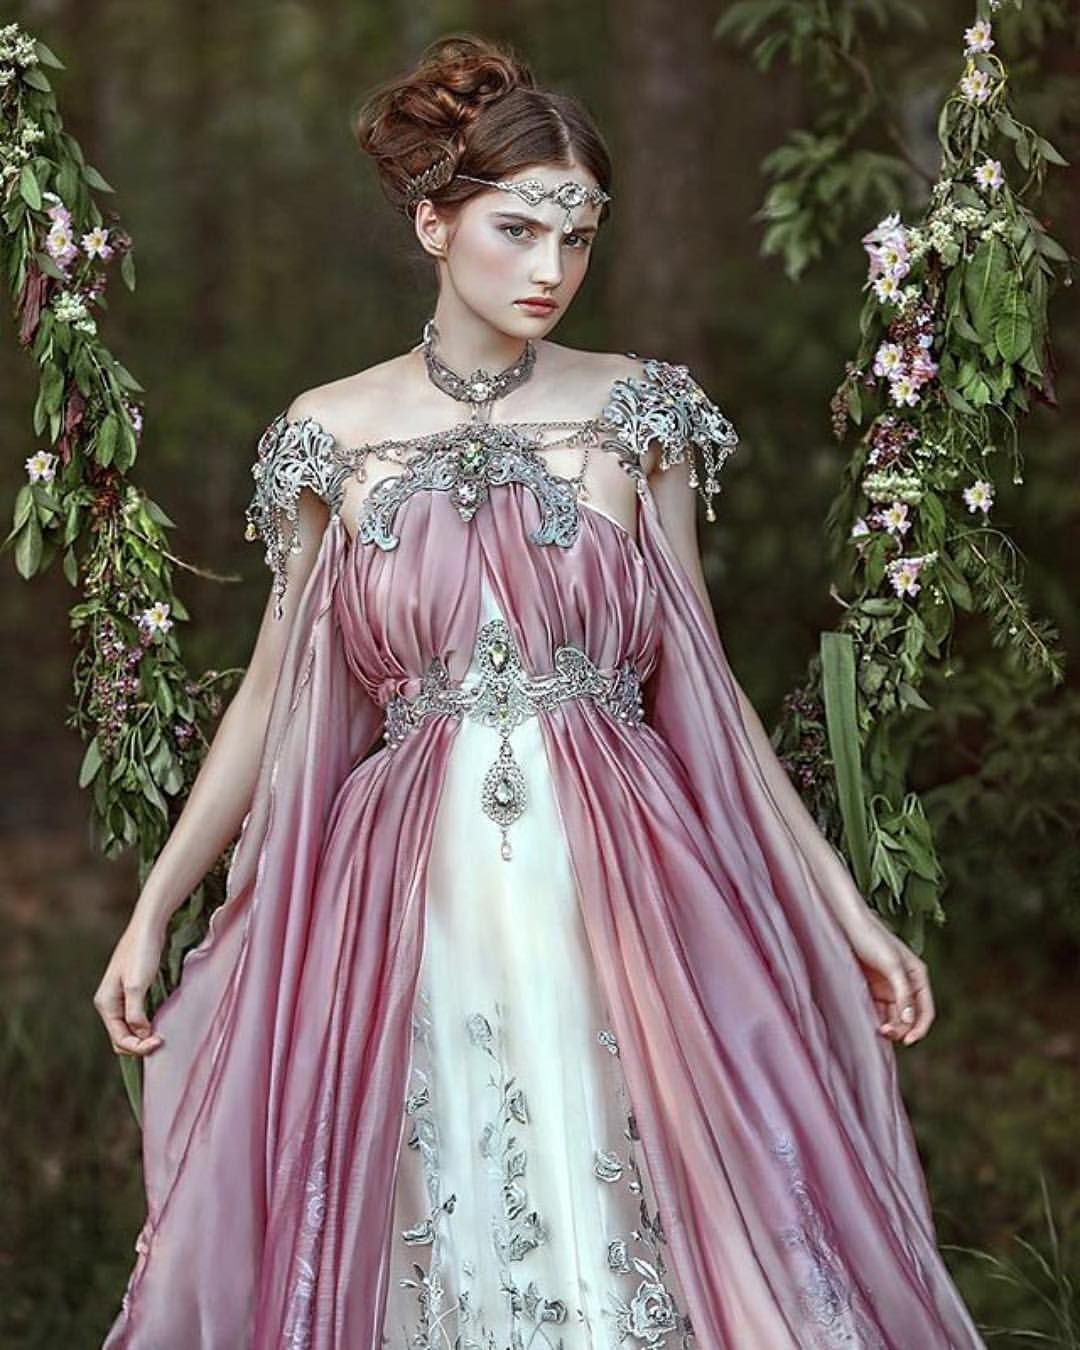 Pin By MangoJuiceBox On Fantastical Gowns In 2019